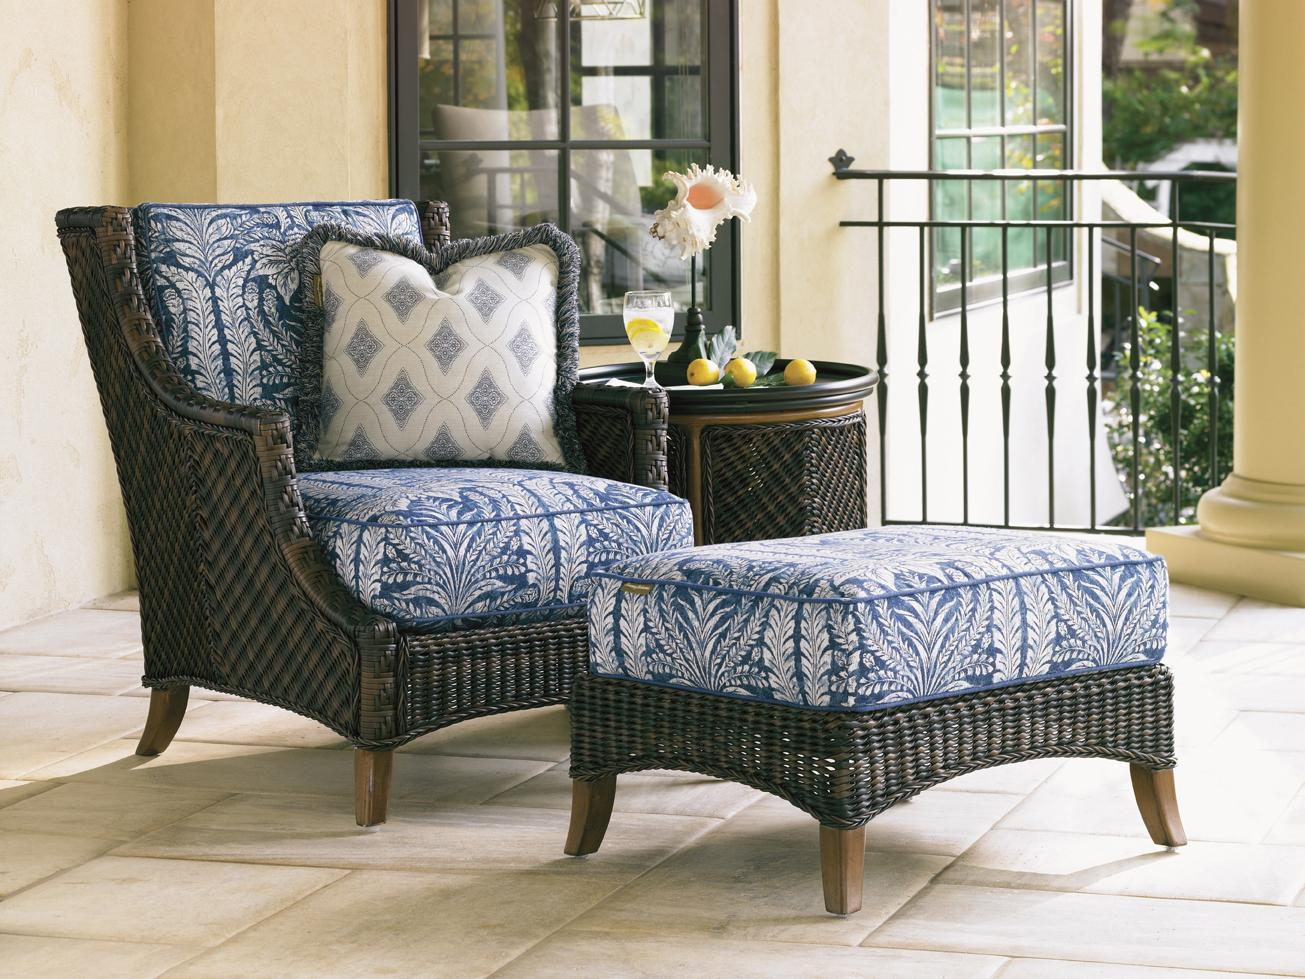 Island Estate Lanai Lounge Chair and Ottoman Set with Table by Tommy Bahama Outdoor Living at Baer's Furniture